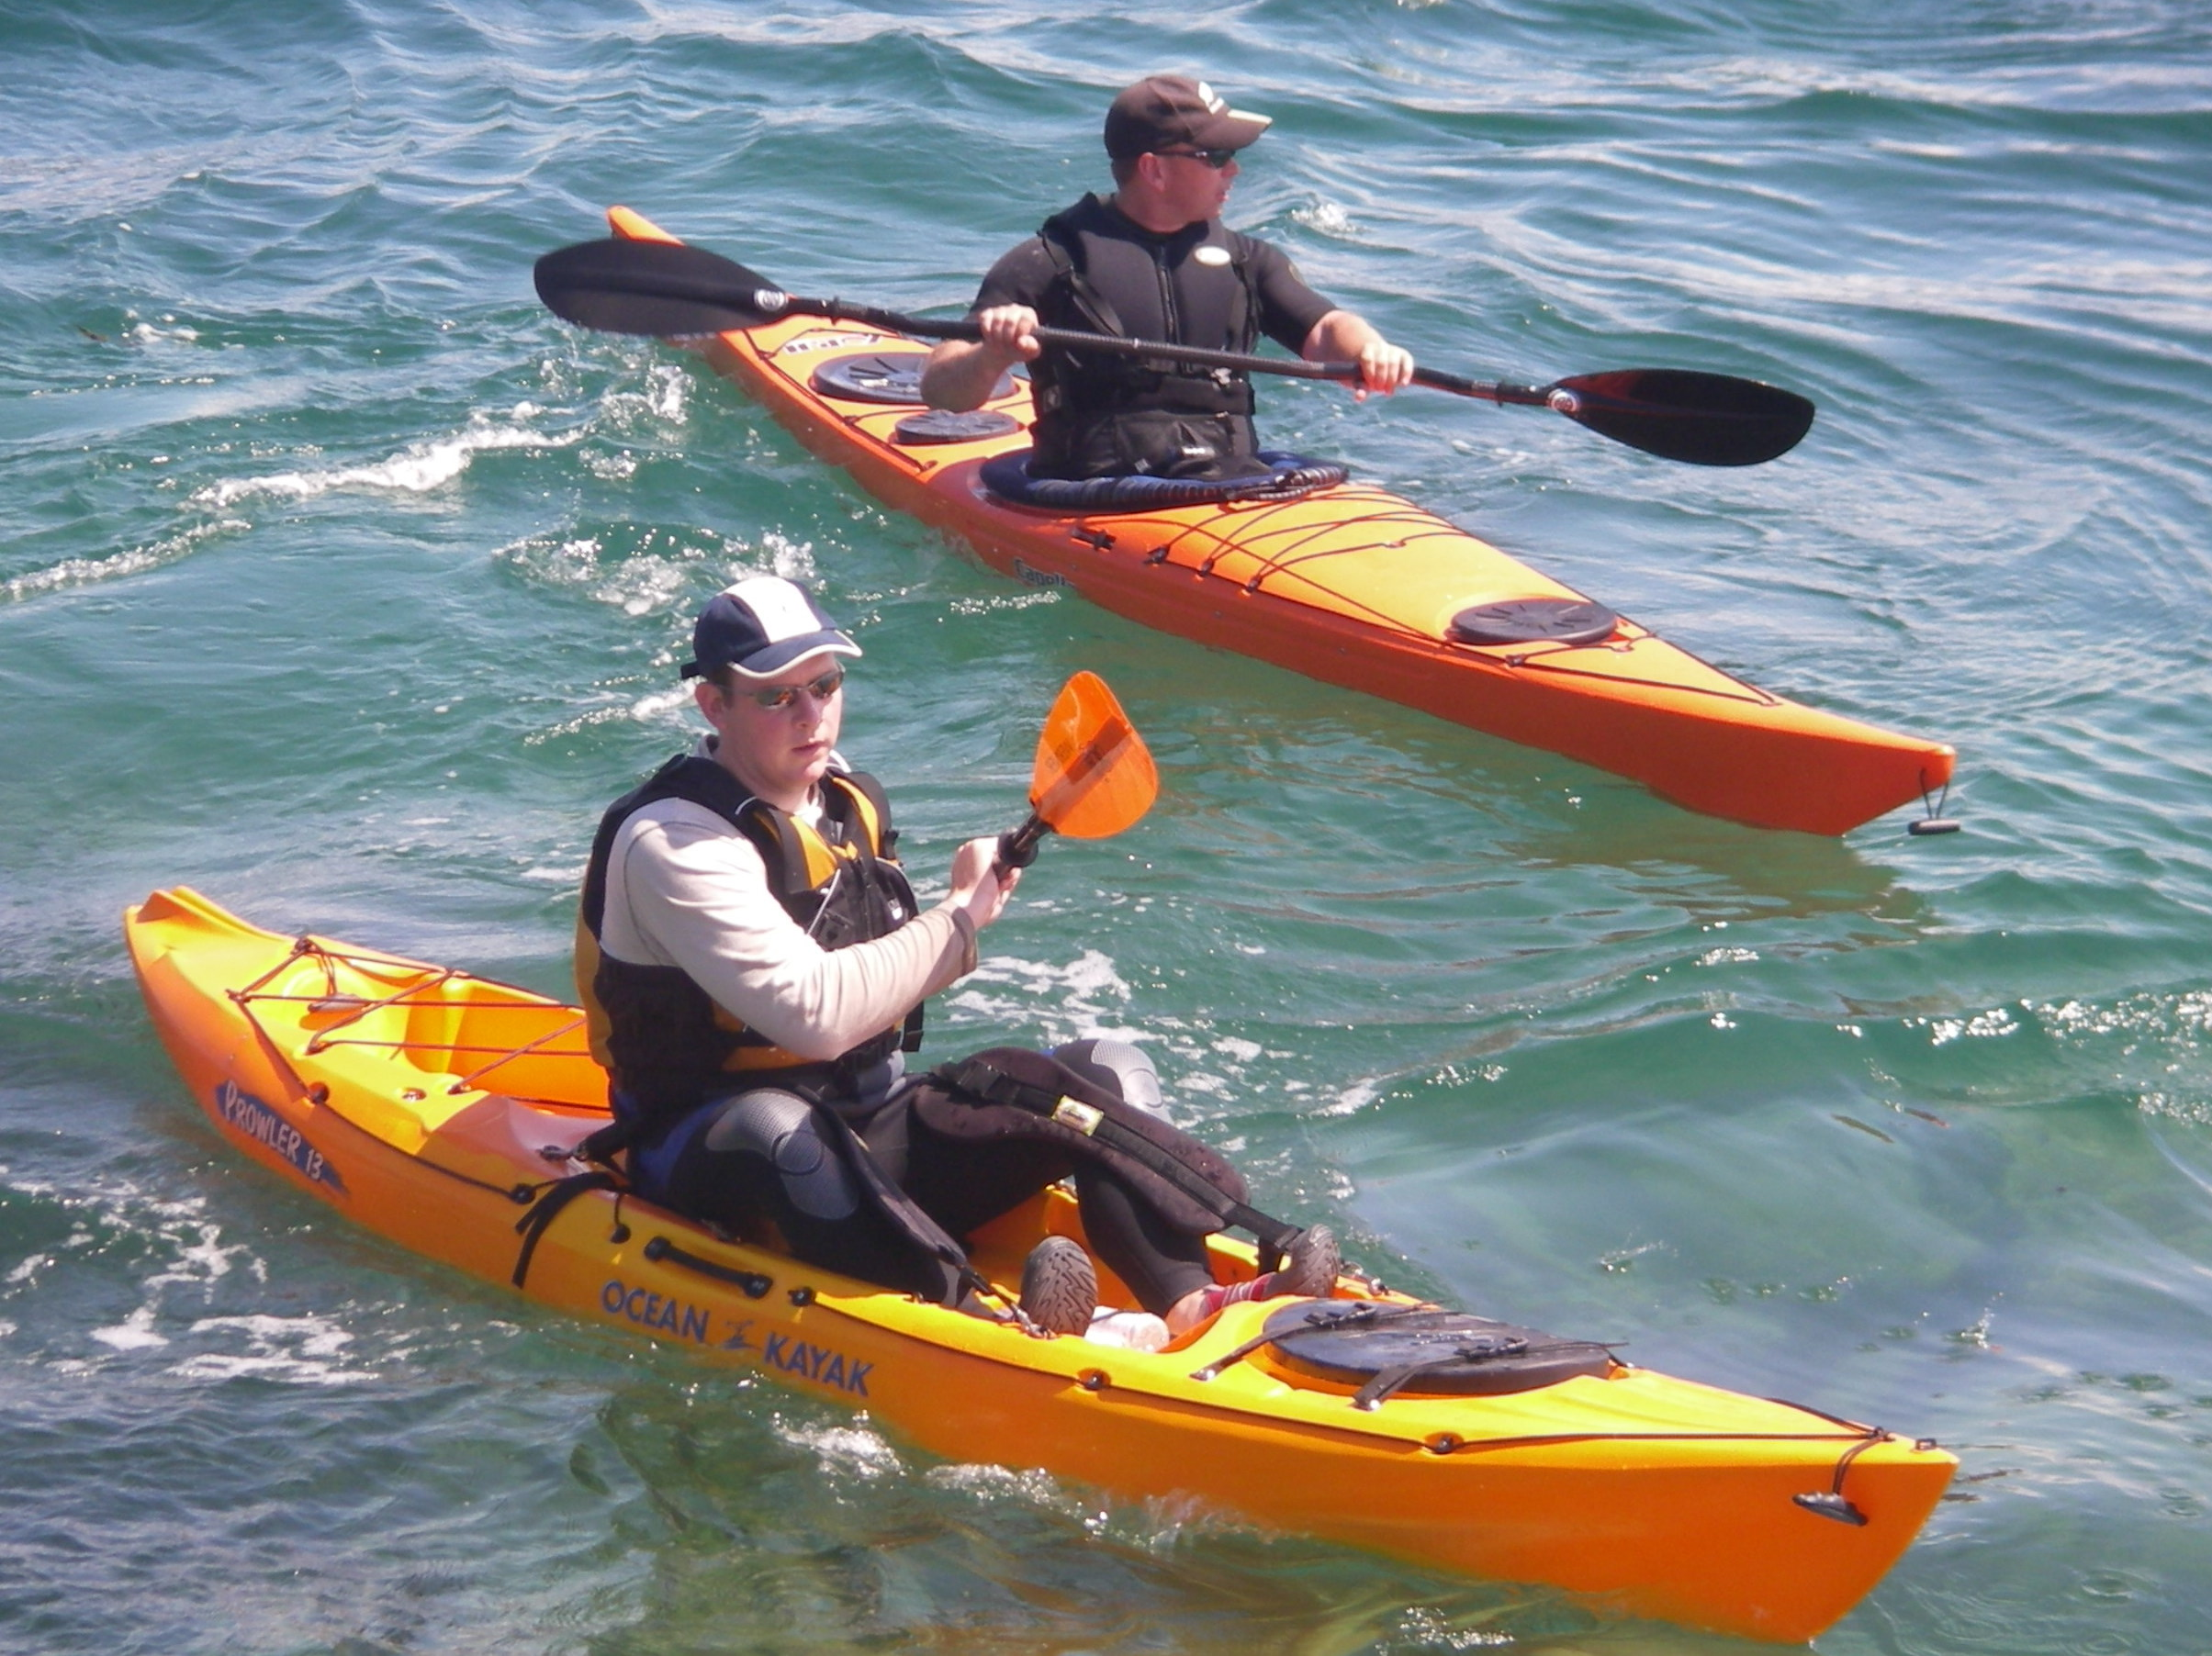 Kayak Sport Competition 493.01 Kb